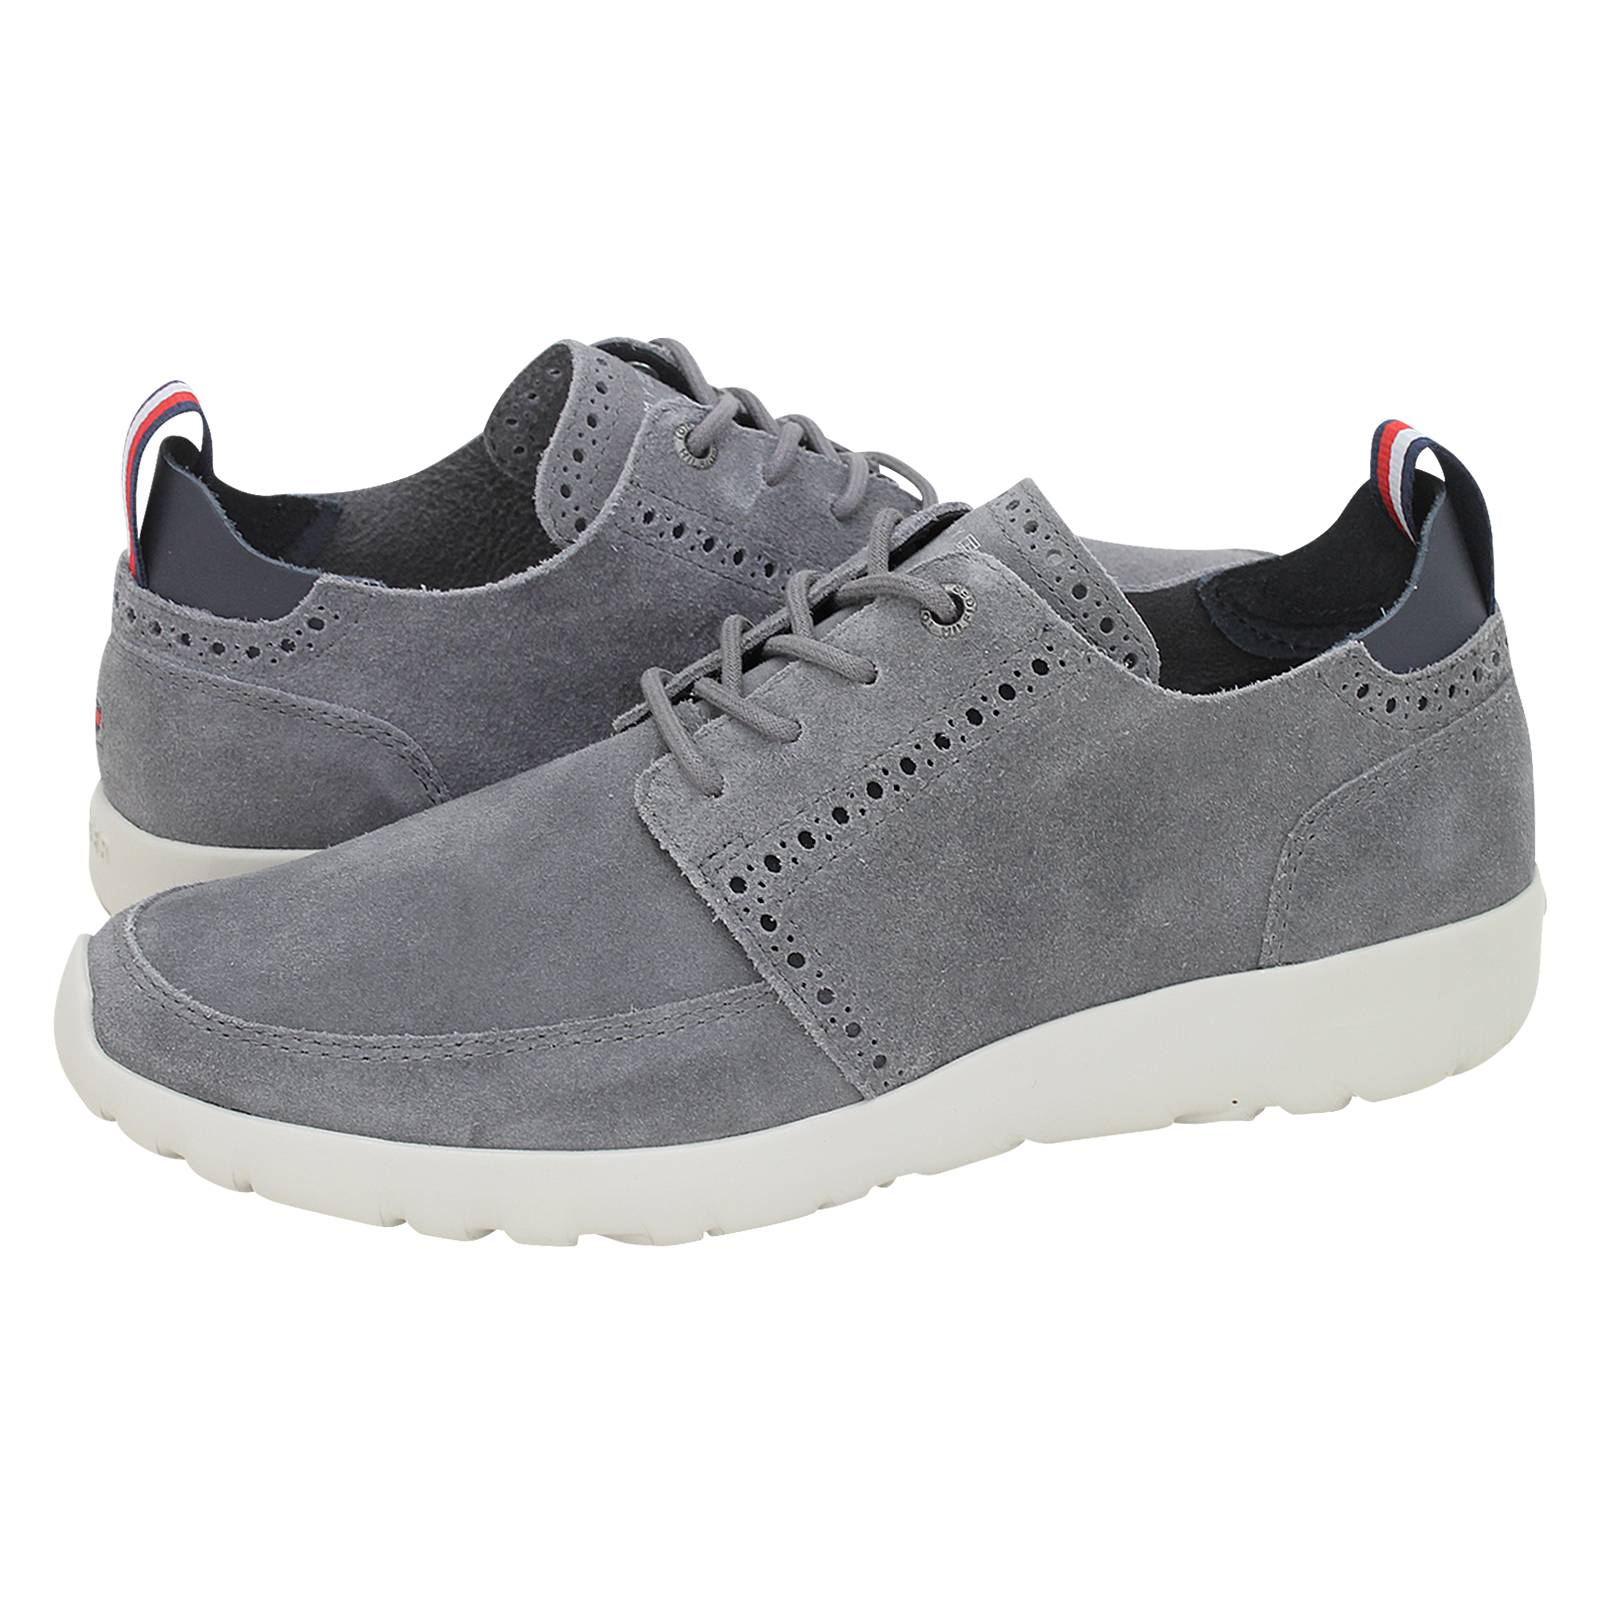 f1d37592c879 Tommy Hilfiger Extra Lightweight City Runner casual shoes. Extra  Lightweight City Runner